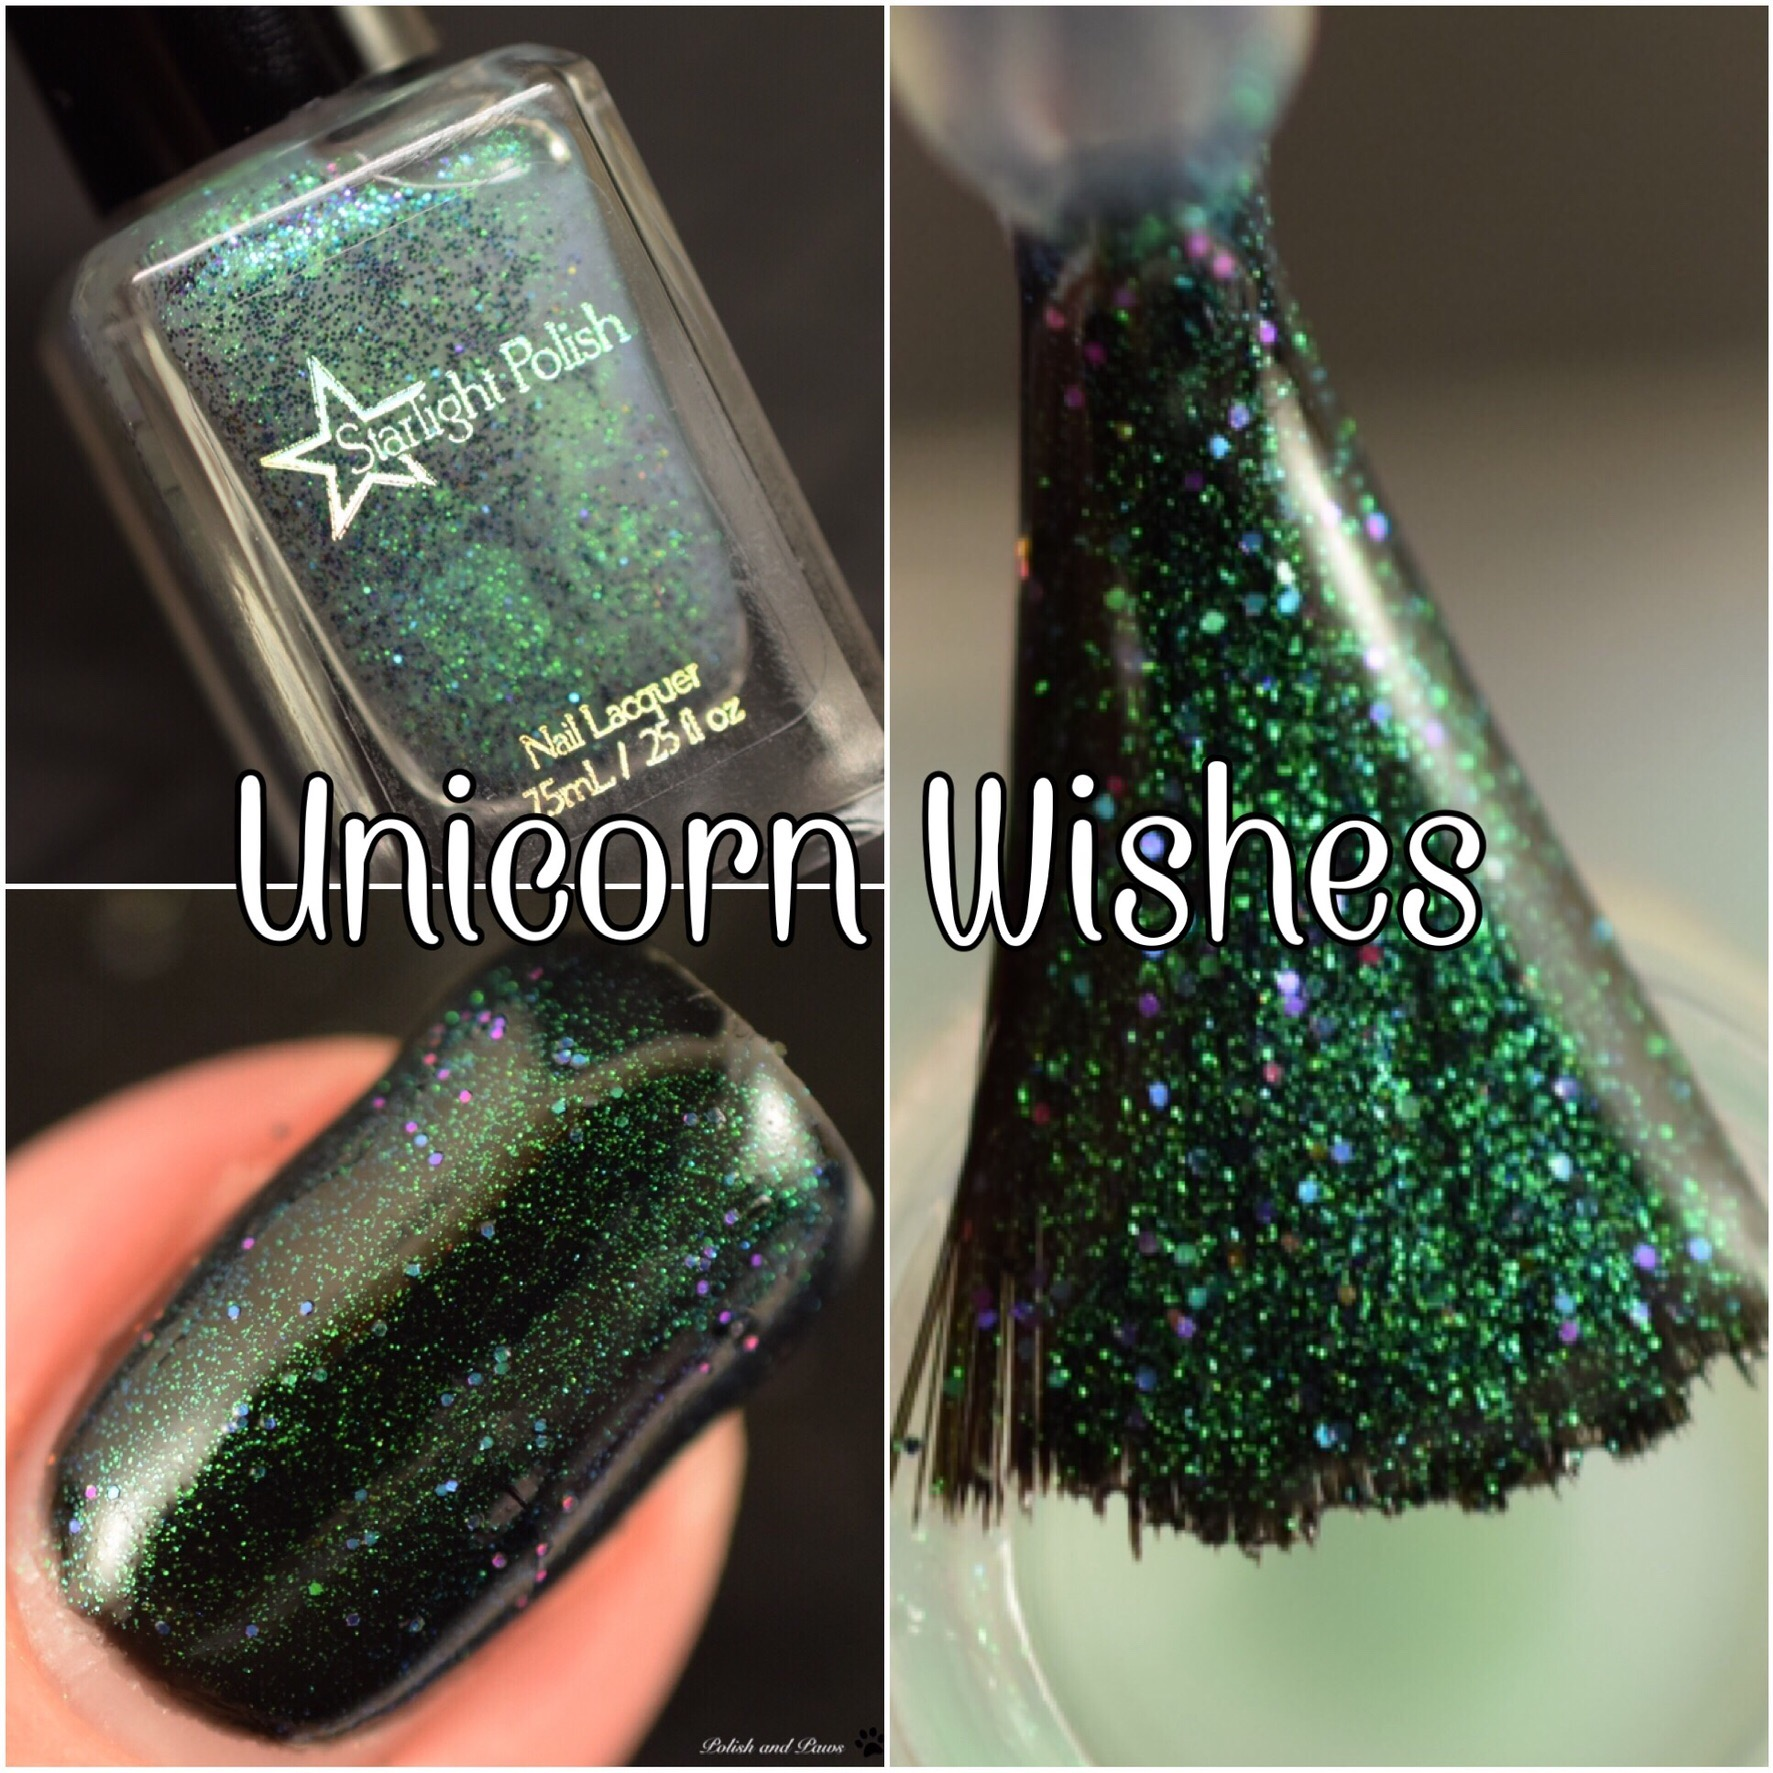 Starlight Polish Unicorn Wishes